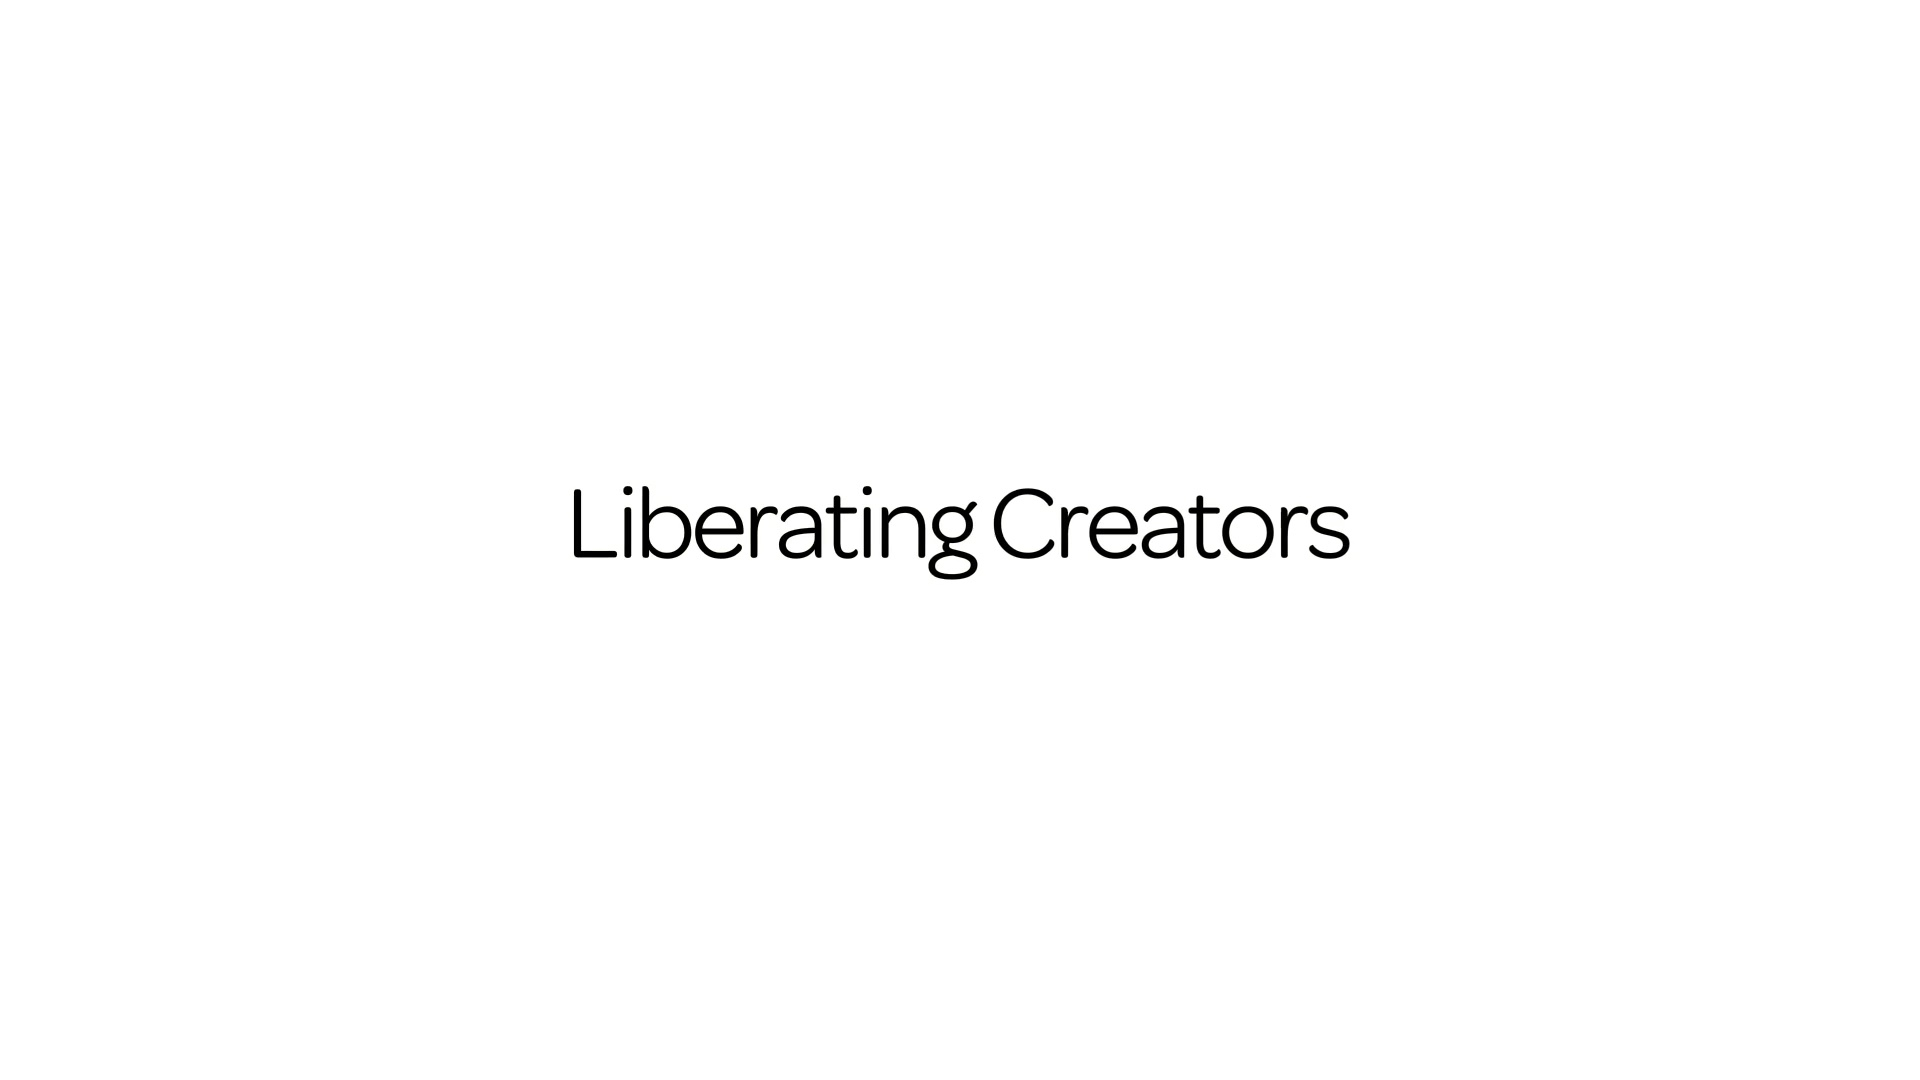 Entrepreneurs and investors working side-by-side to liberate creators for a more conscious living to enhance human life.